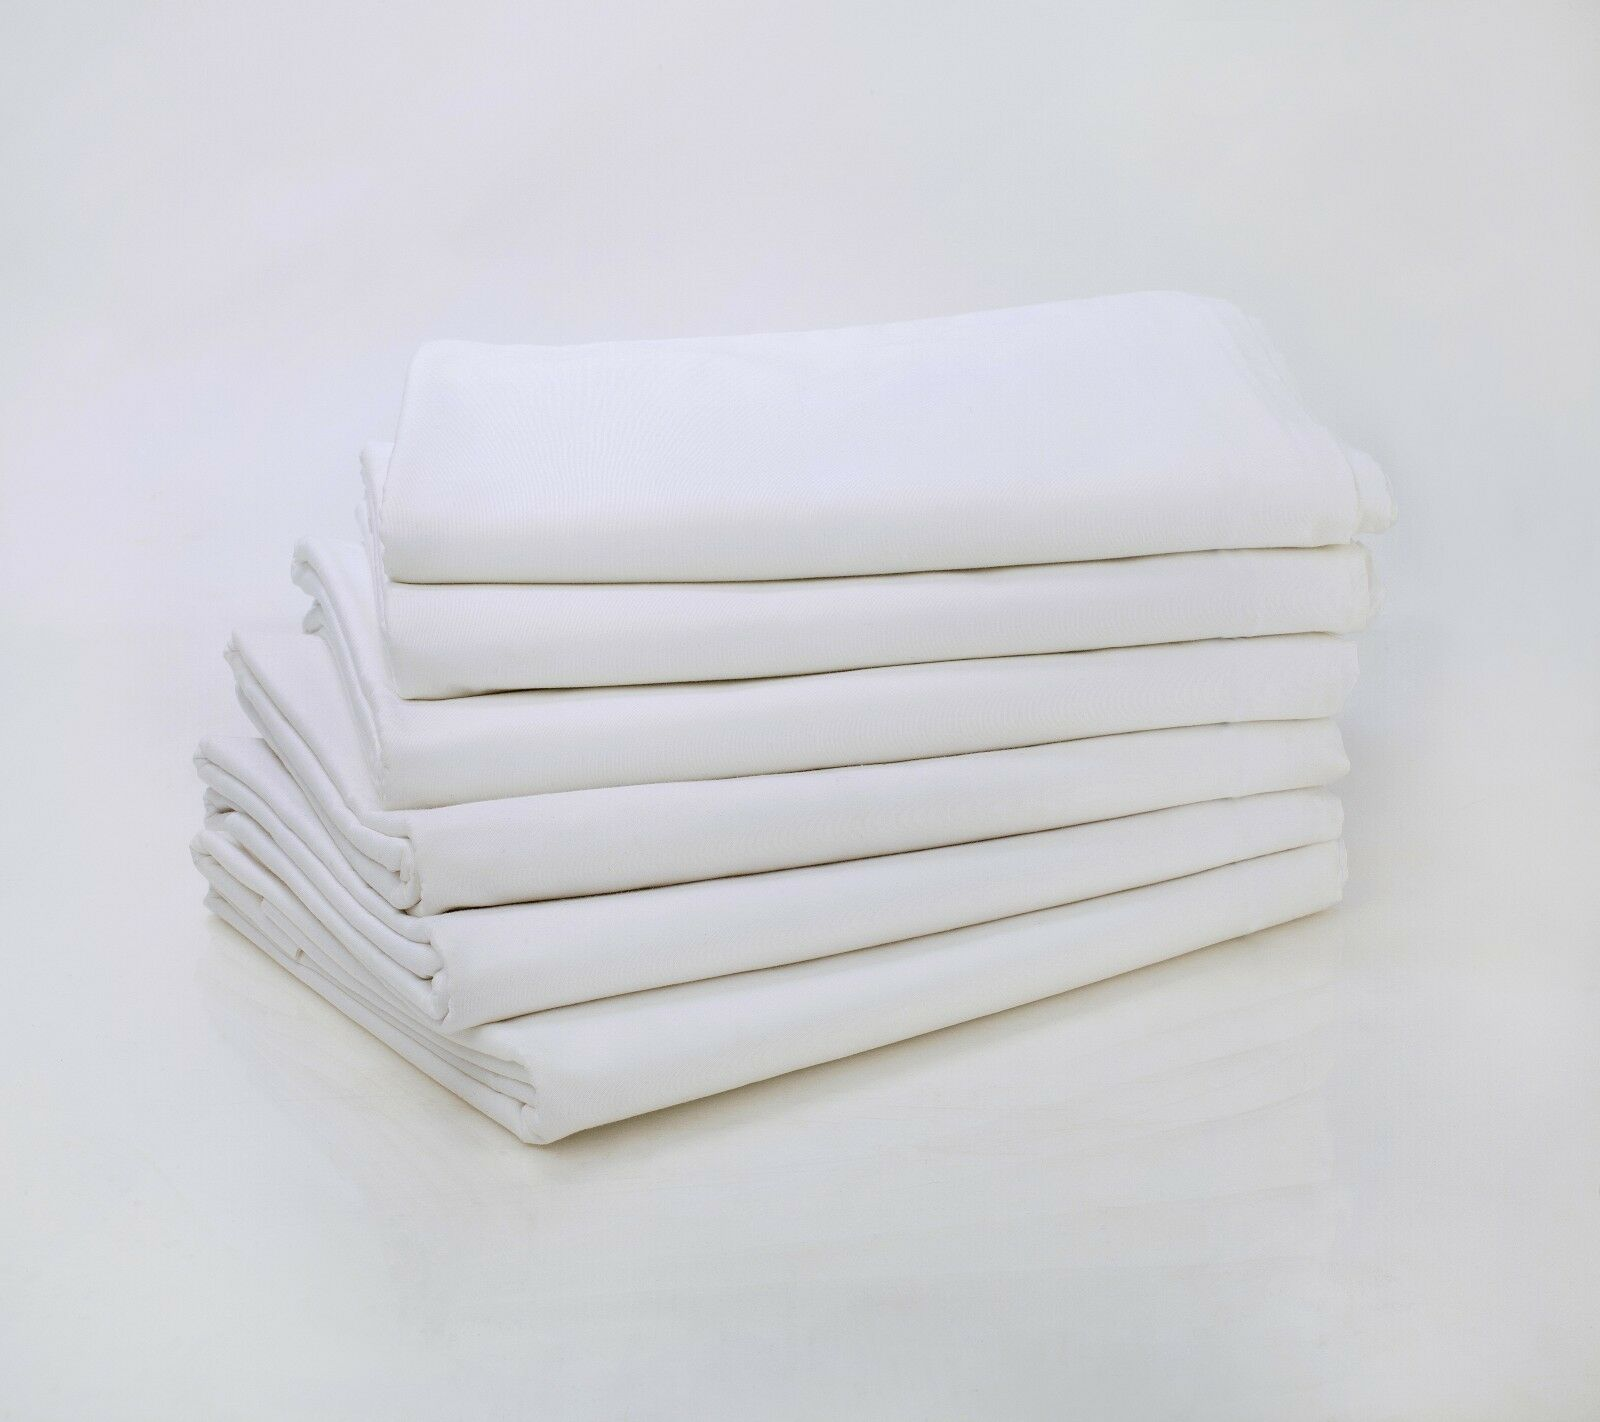 LUXURY HOTEL LINENS SALE   LOT OF 12 WHITE QUEEN SIZE FLAT SHEET T200 PERCALE